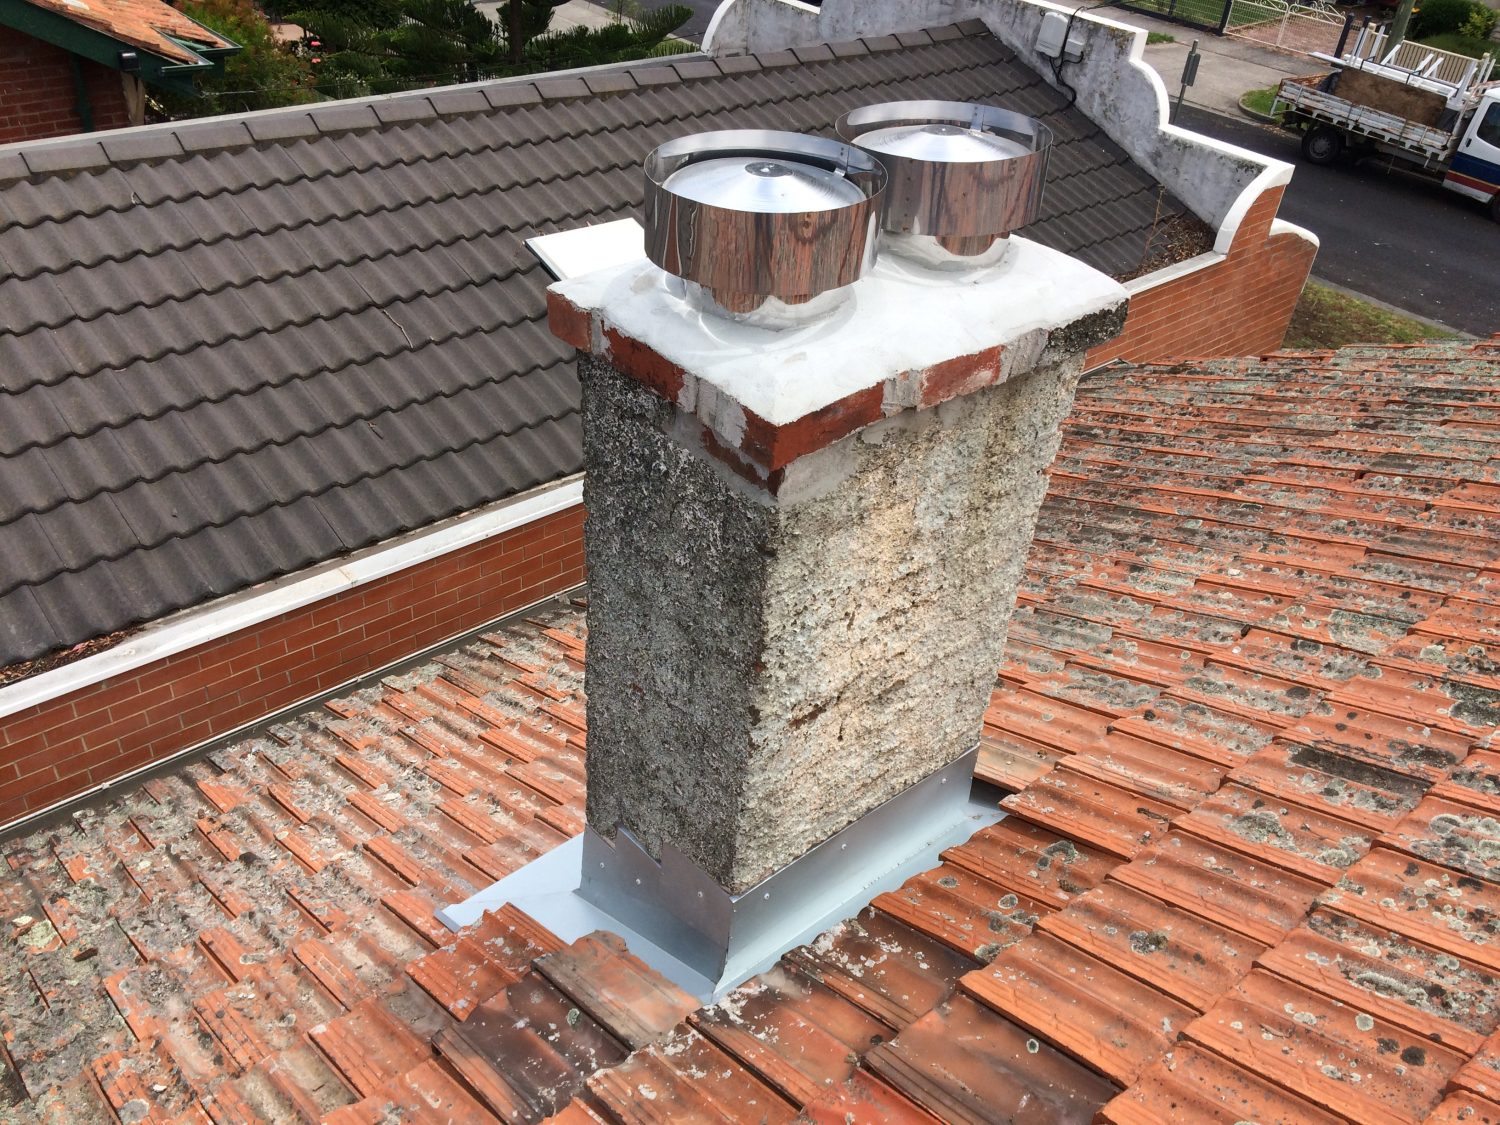 roof leak repair and Chimney Flashing Replacement, East Geelong